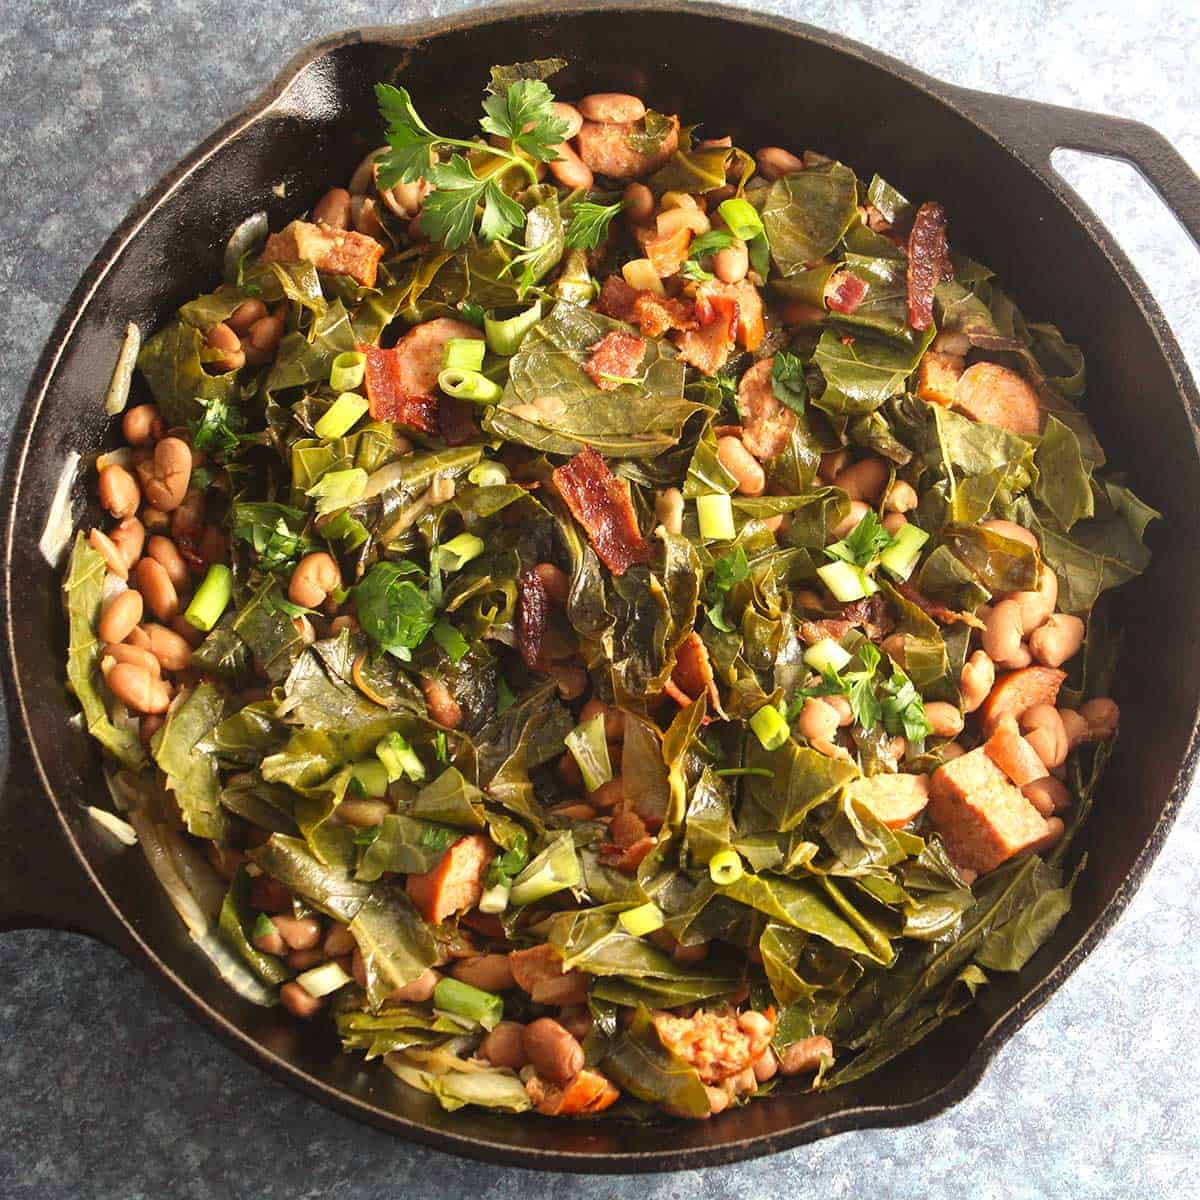 Brazilian beans and greens in a skillet.